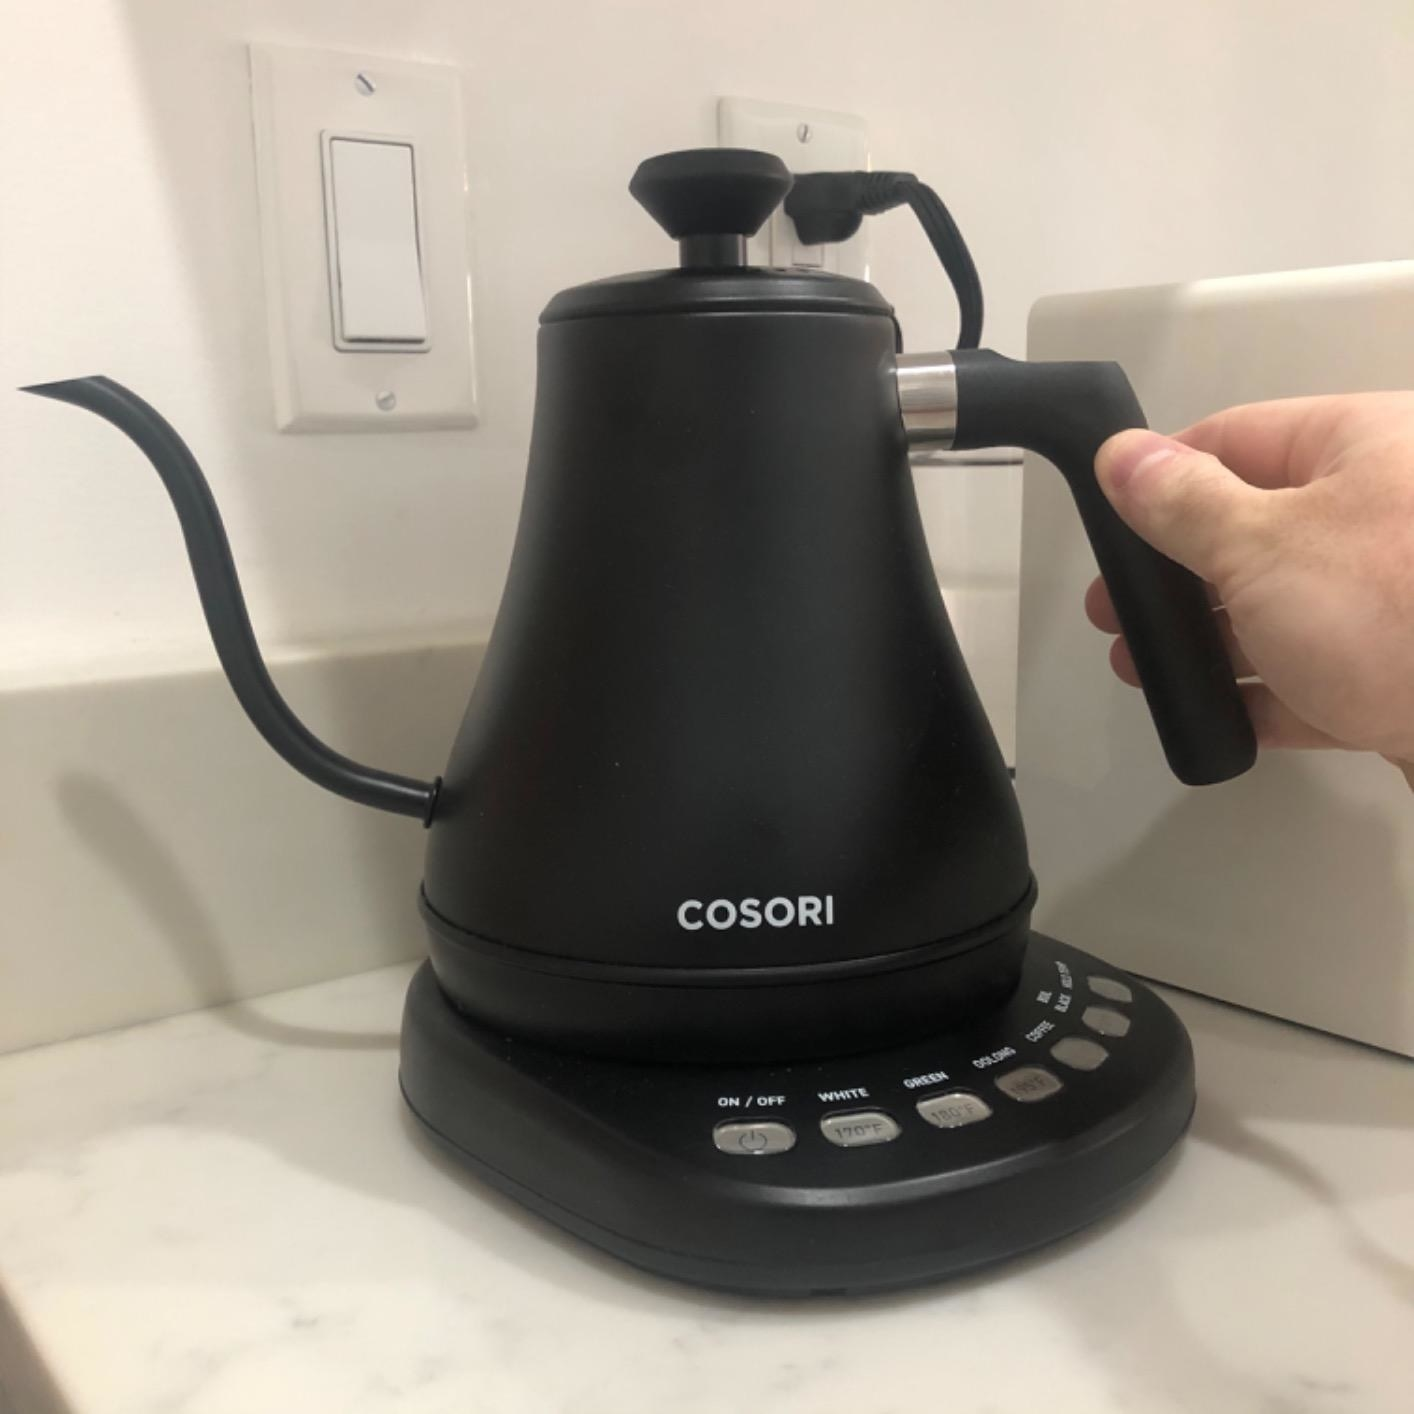 A reviewer's photo of gooseneck kettle on their kitchen countertop